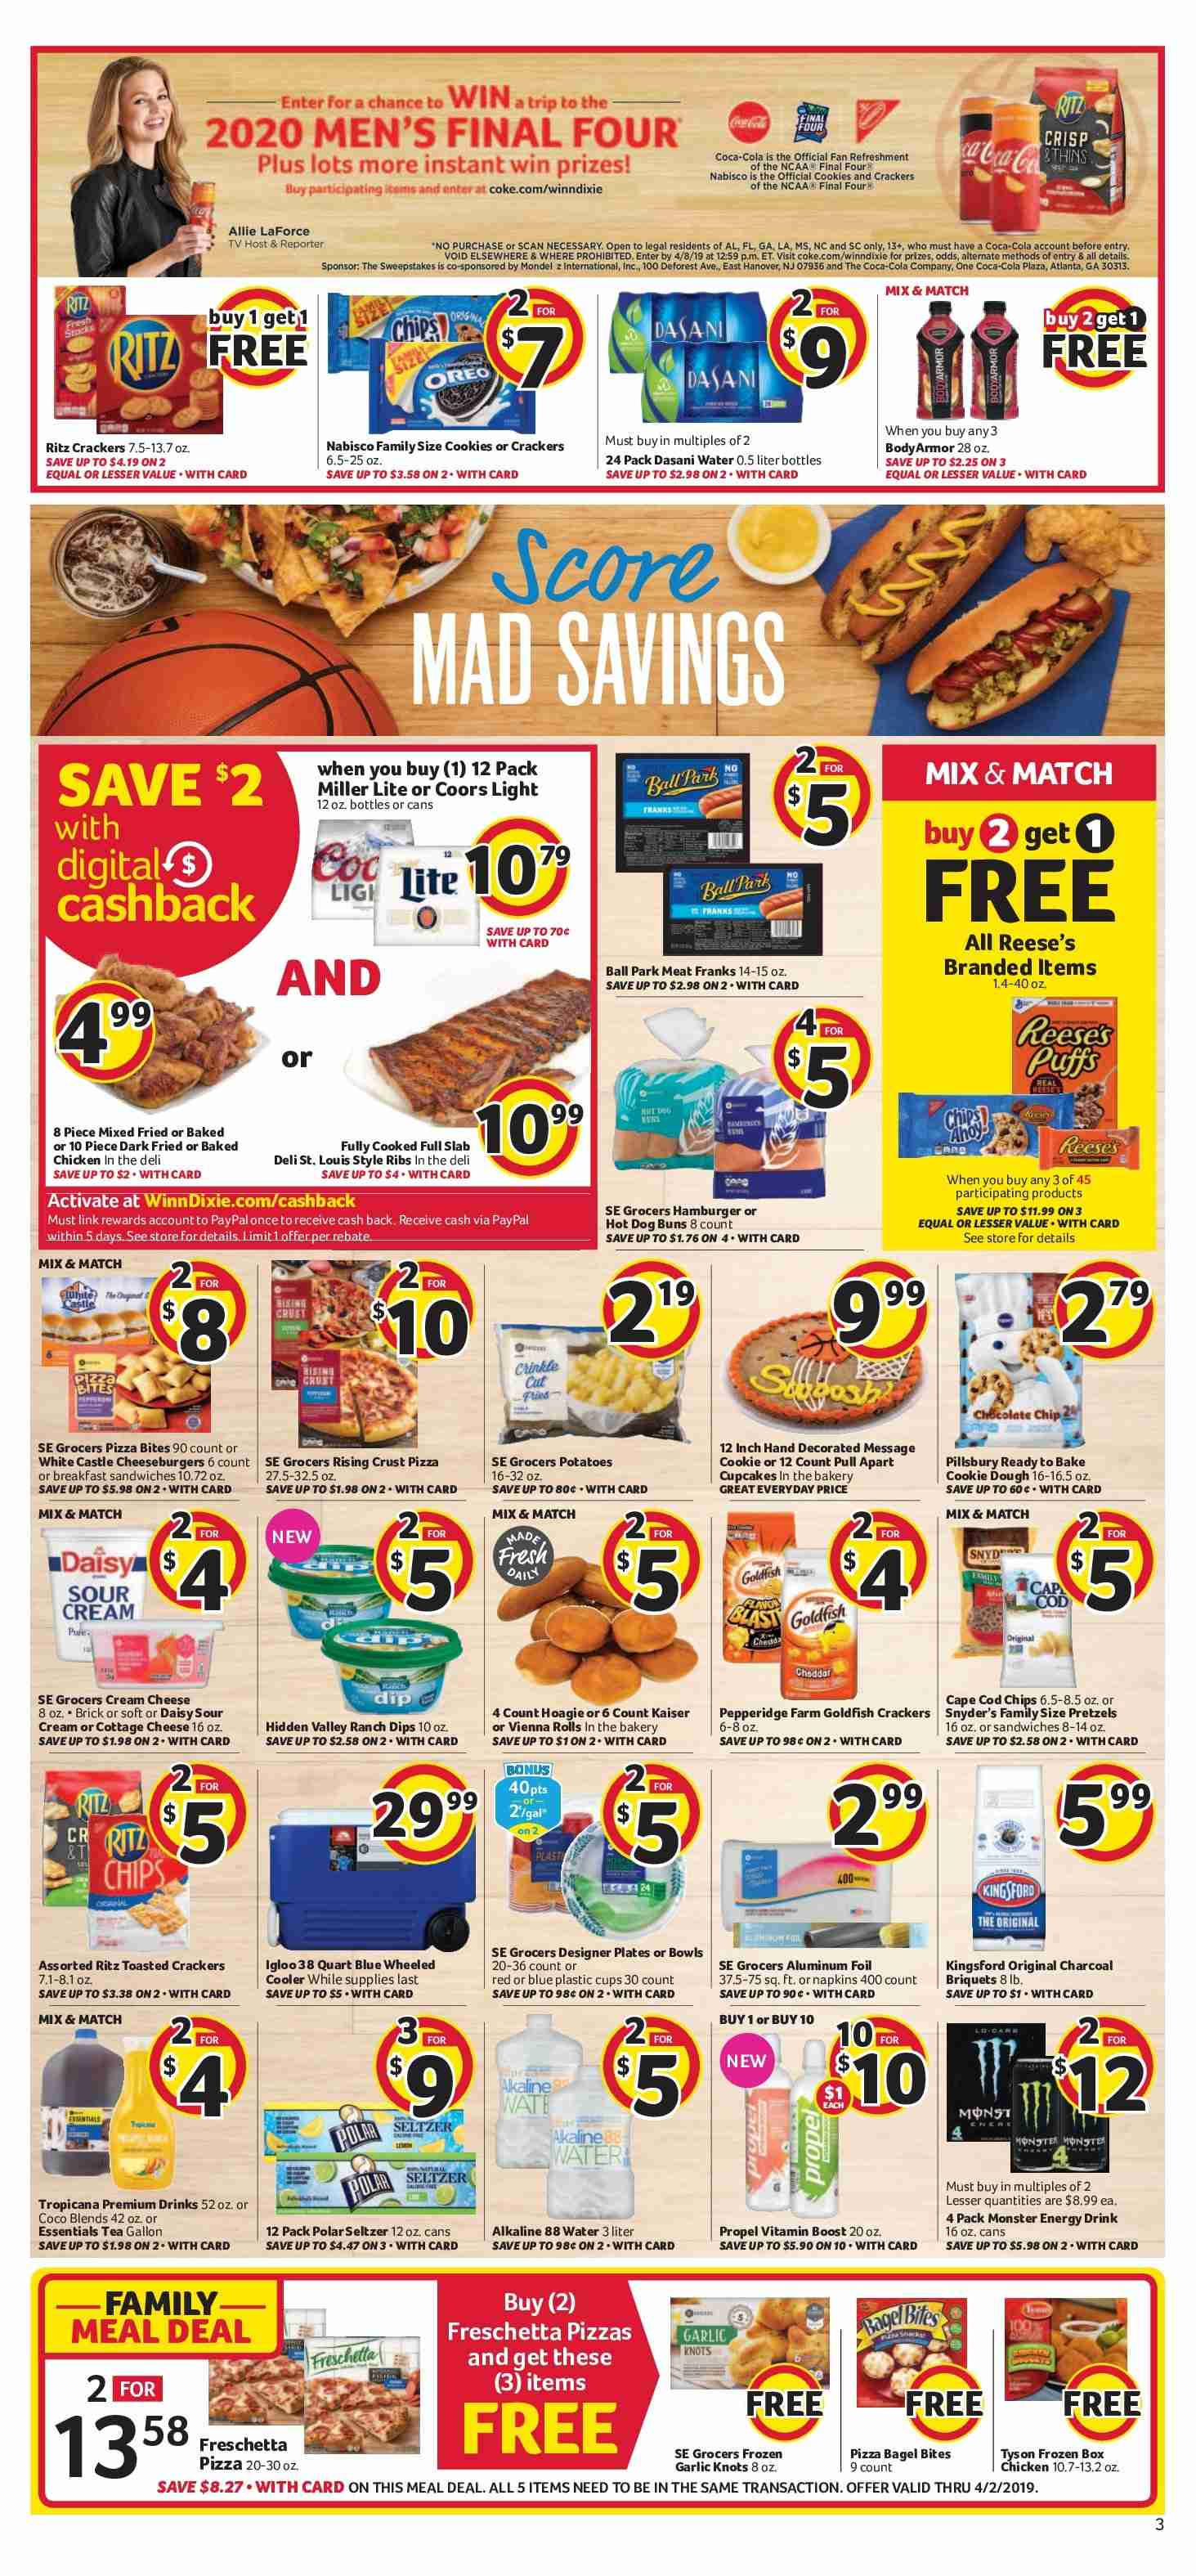 Winn Dixie Flyer  - 03.27.2019 - 04.02.2019. Page 3.